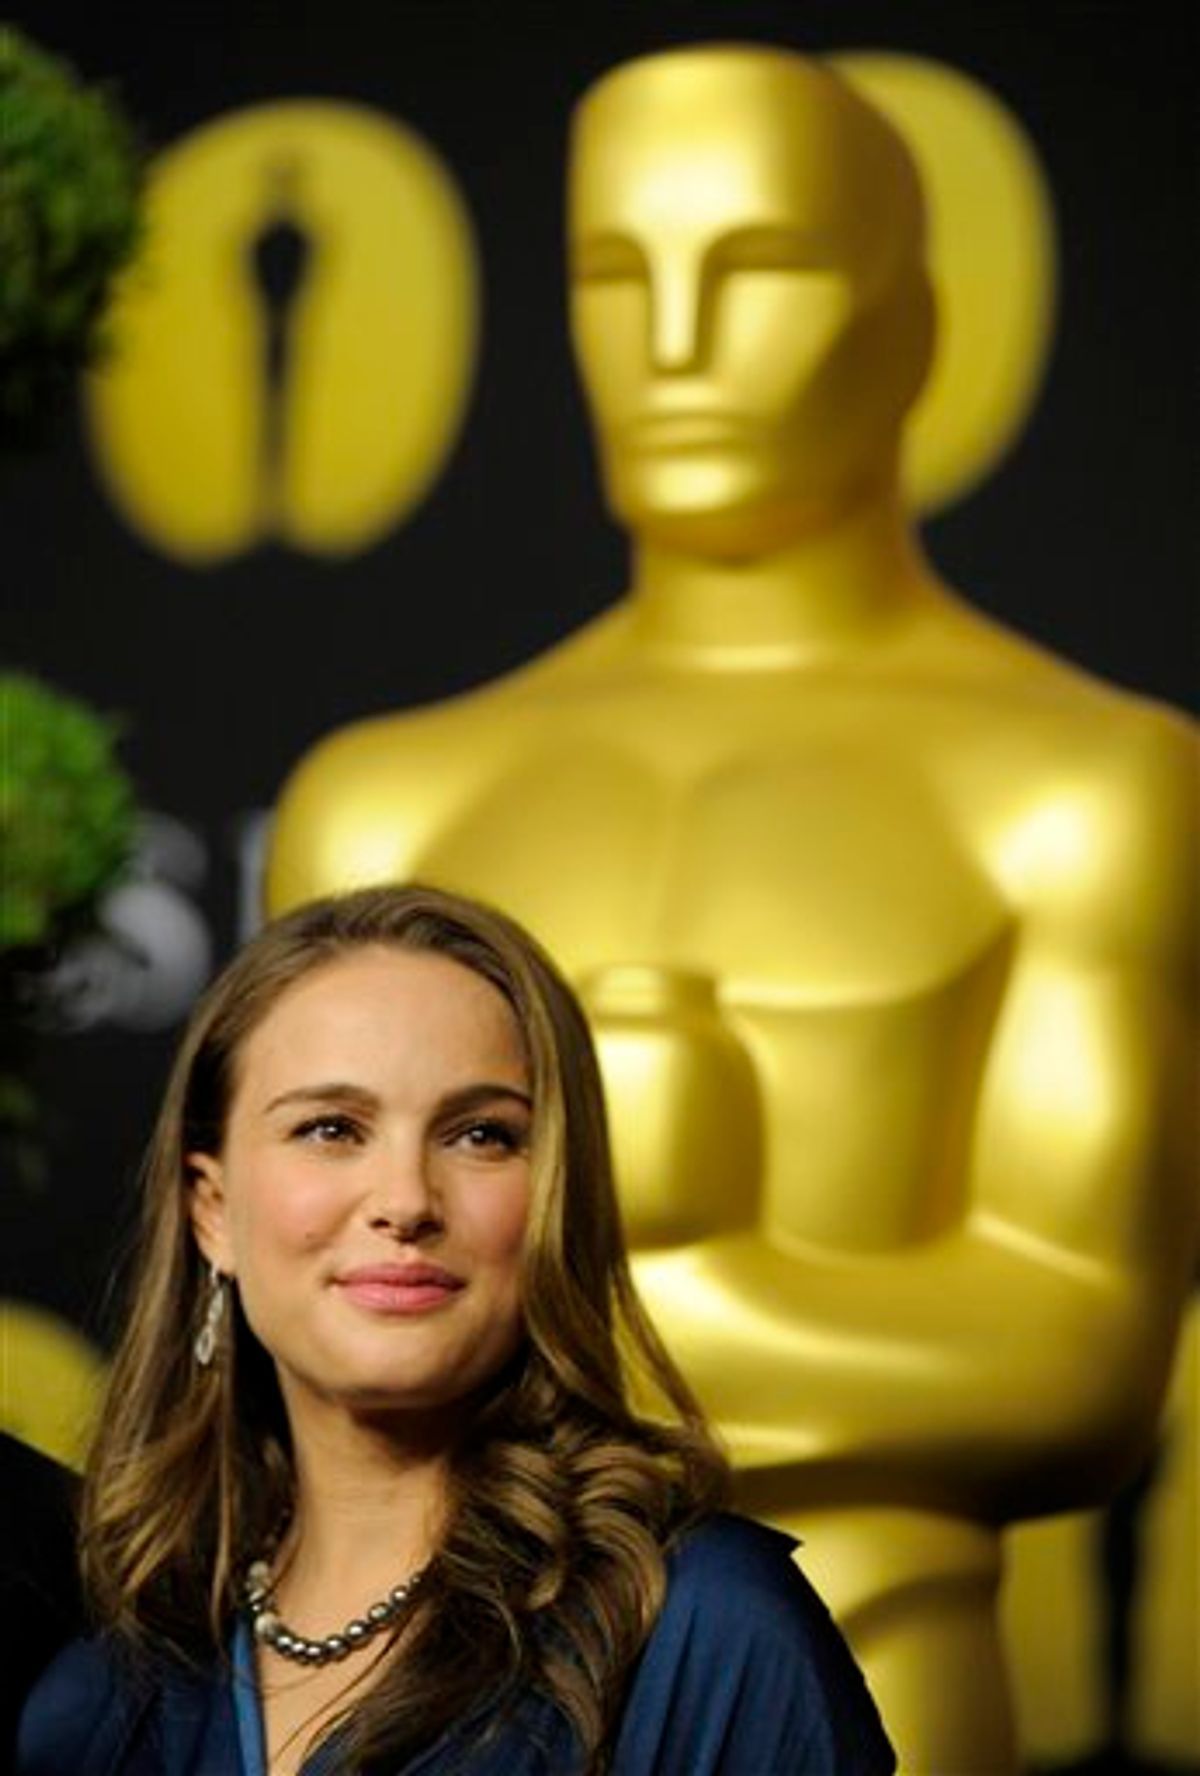 """Natalie Portman, an Oscar nominee for Actress in a Leading Role for """"Black Swan,"""" arrives at the 30th Academy Awards Nominees Luncheon in Beverly Hills, Calif., Monday, Feb. 7, 2011. (AP Photo/Chris Pizzello) (AP)"""